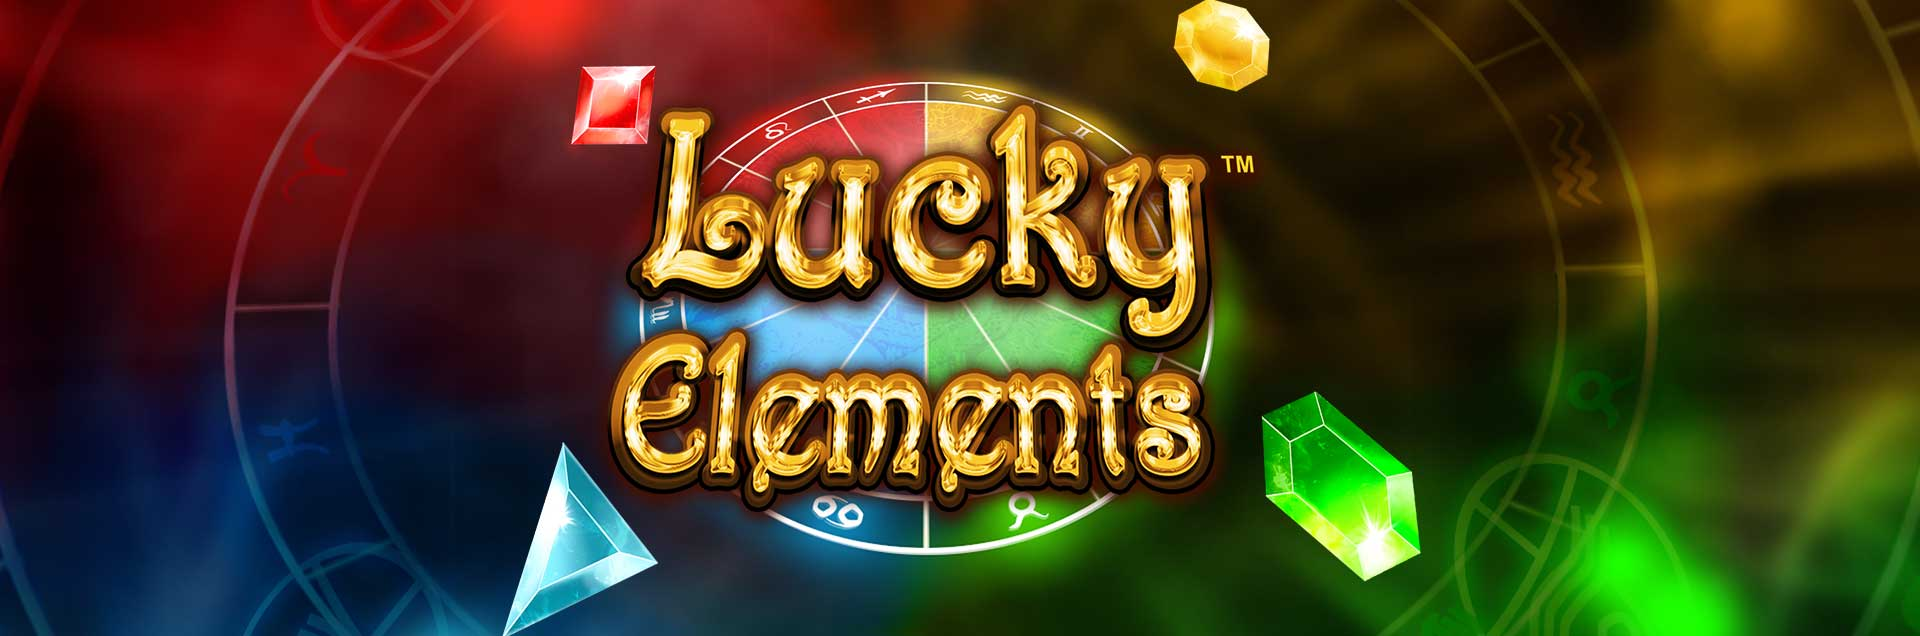 Lucky Elements Games Header Image